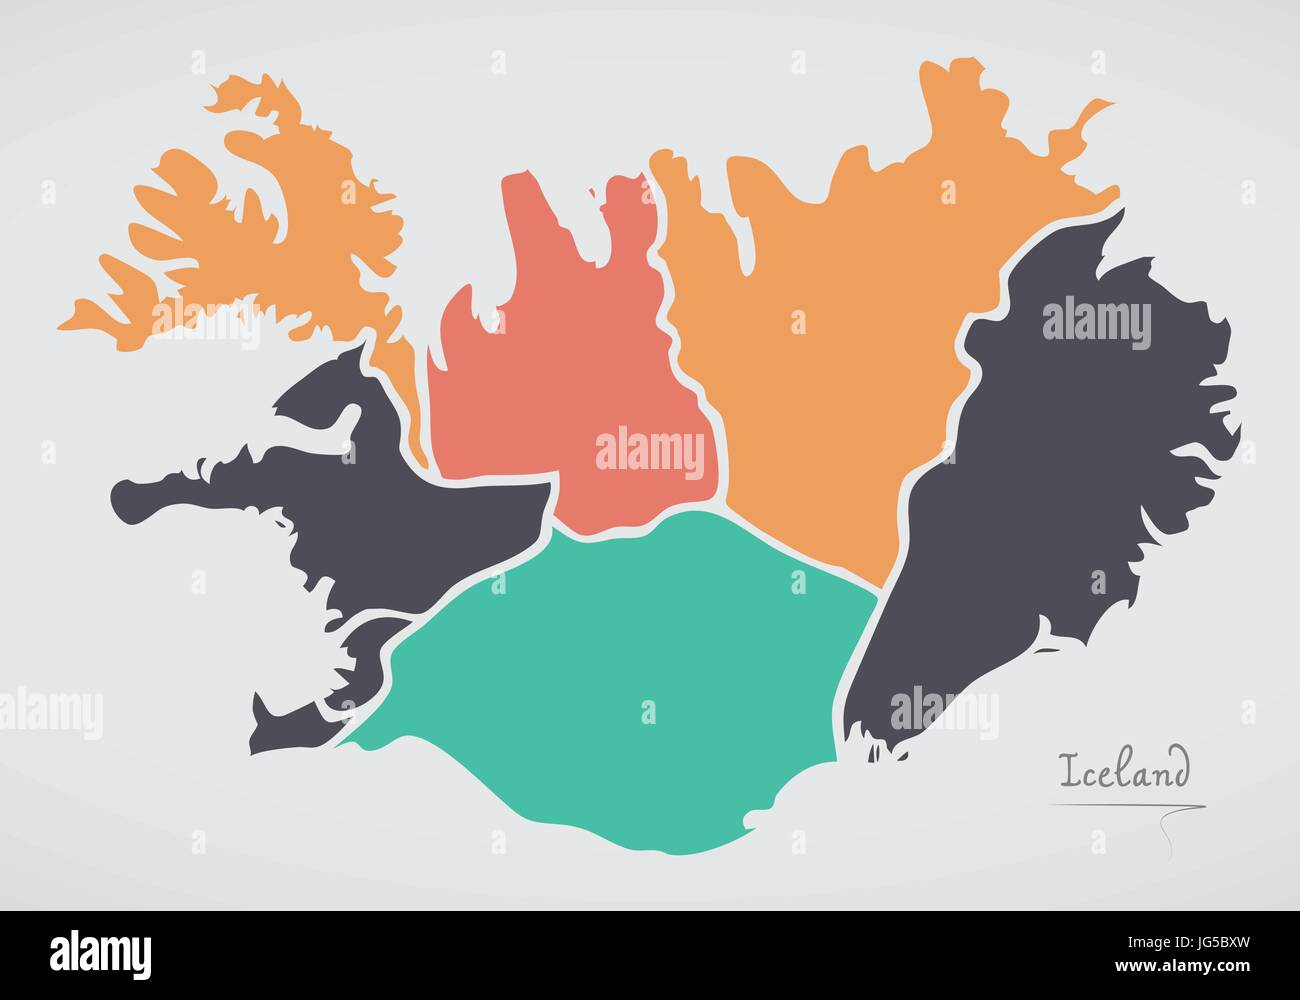 Iceland Map With States Of on jamaica state map, albania state map, denmark state map, hungary state map, haiti state map, park city utah state map, nunavut state map, nepal state map, united states of america state map, ukraine state map, france state map, north east region state map, bahamas state map, antarctica state map, malaysia state map, romania state map, mongolia state map, bolivia state map, iceland summer, paraguay state map,